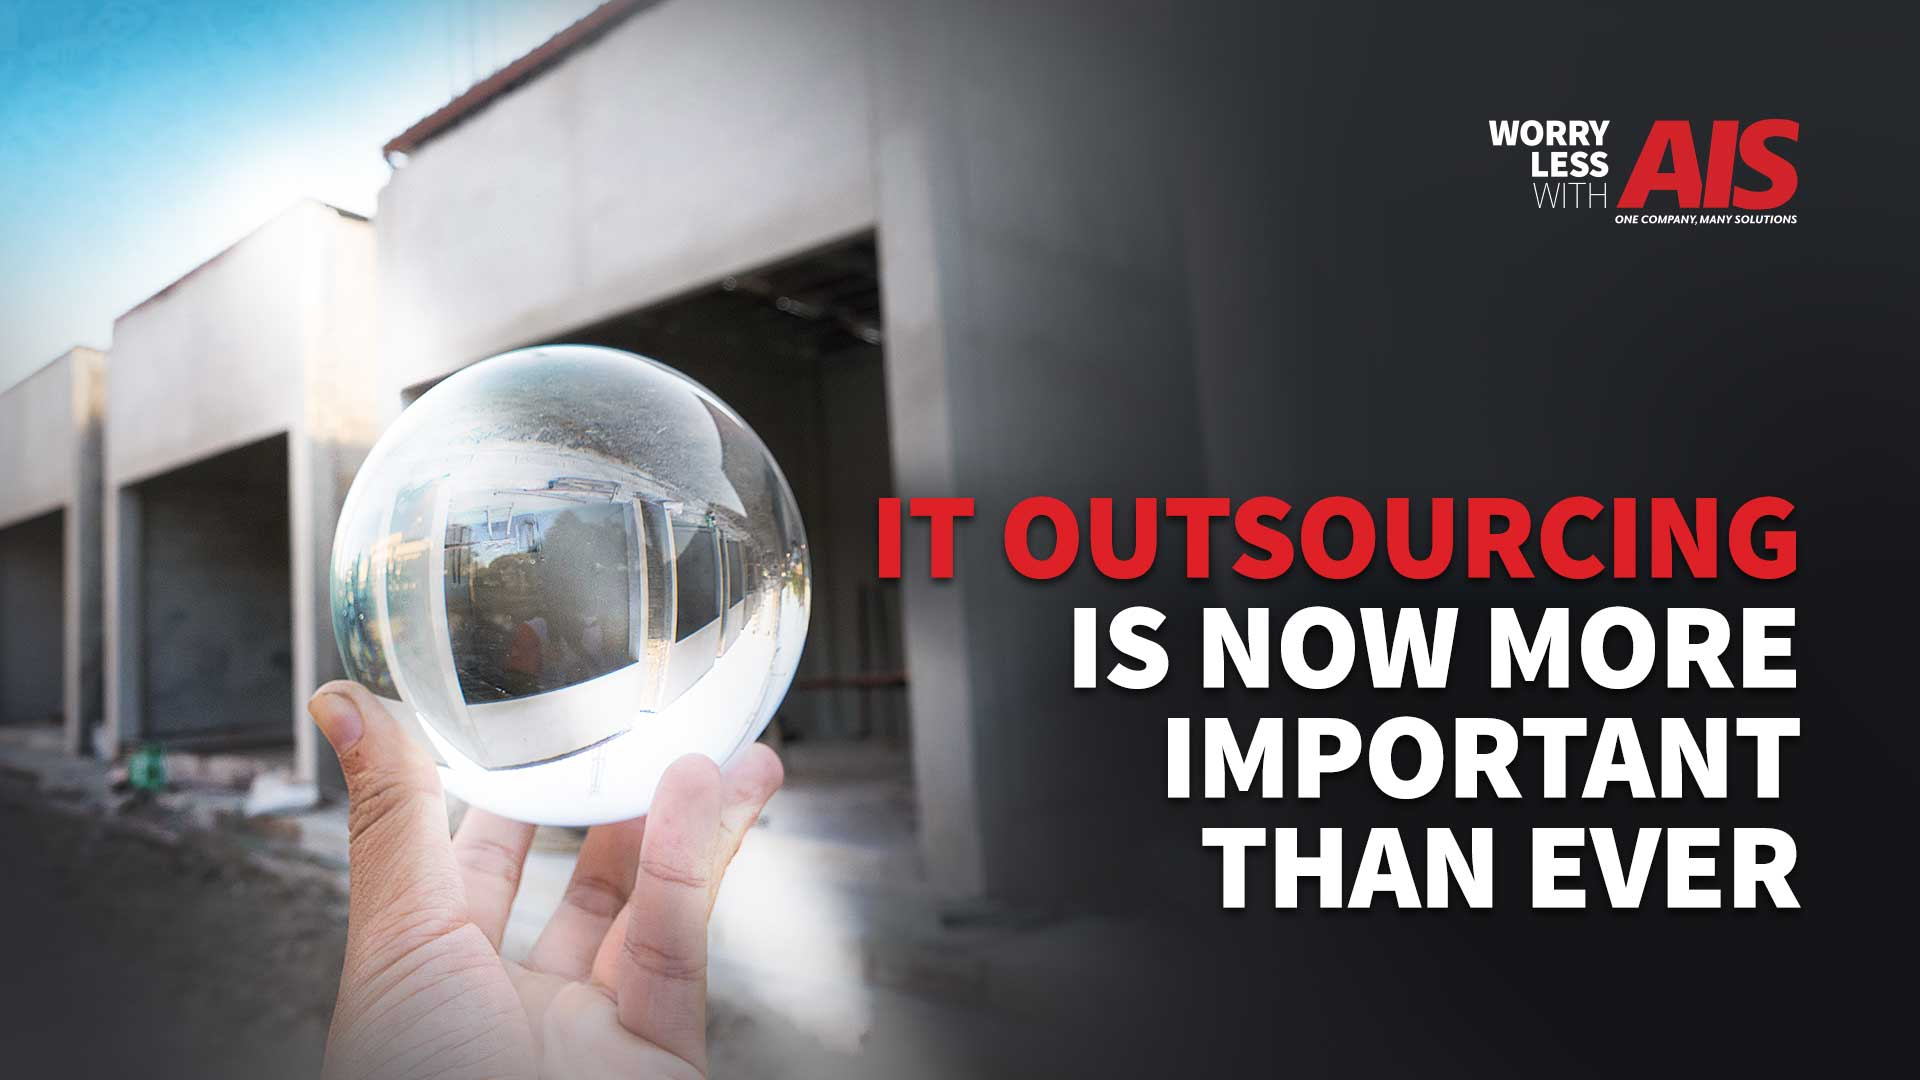 it-outsourcing-more-important-now-than-ever-for-small-business